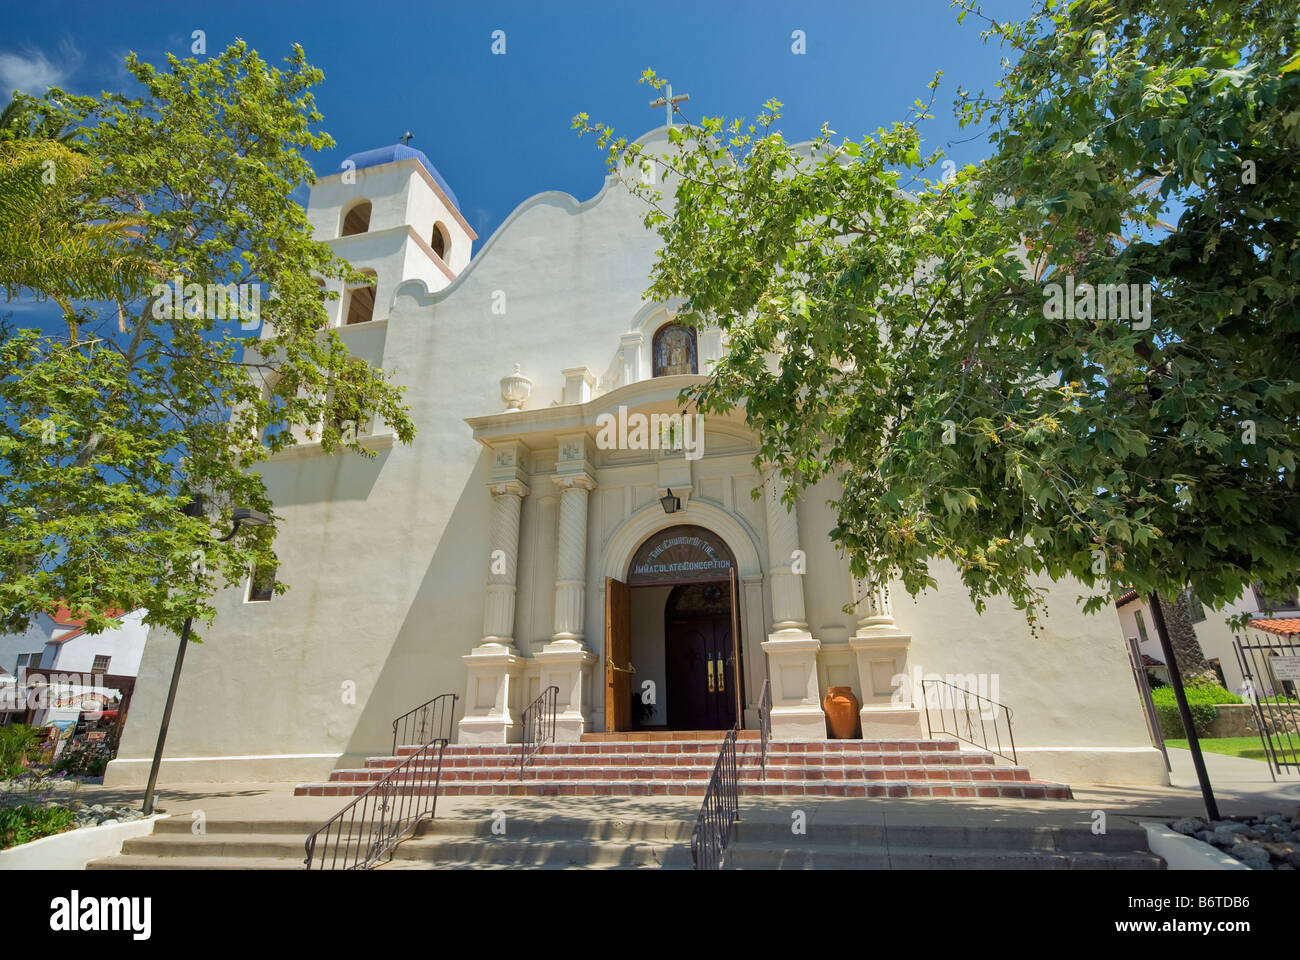 Immaculate Conception Church at Old Town San Diego California USA - Stock Image